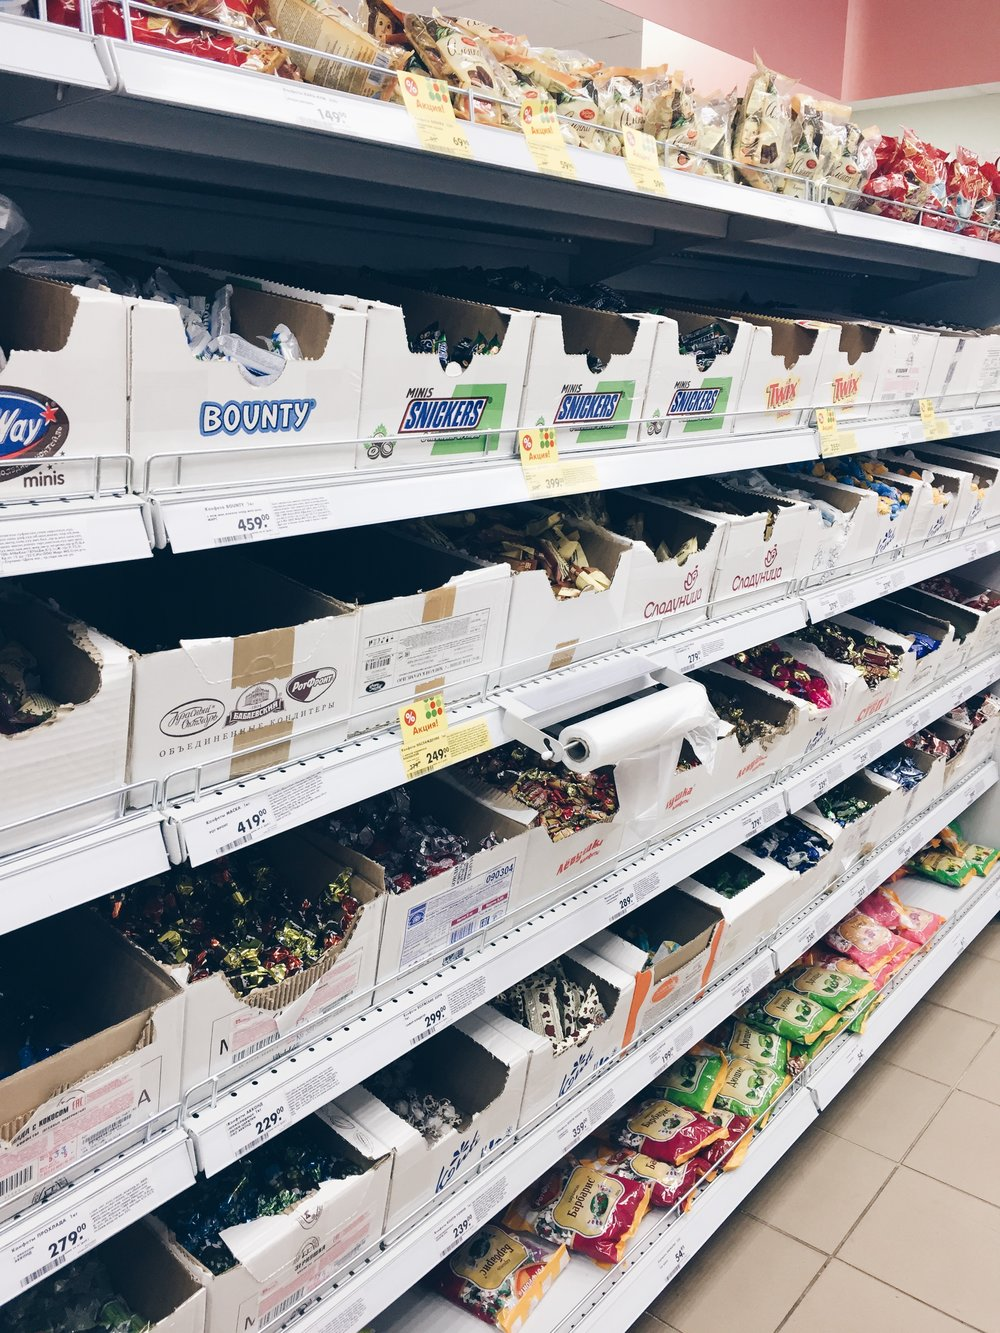 A typical candy aisle at the store, filled with some that are familiar and many that are not.